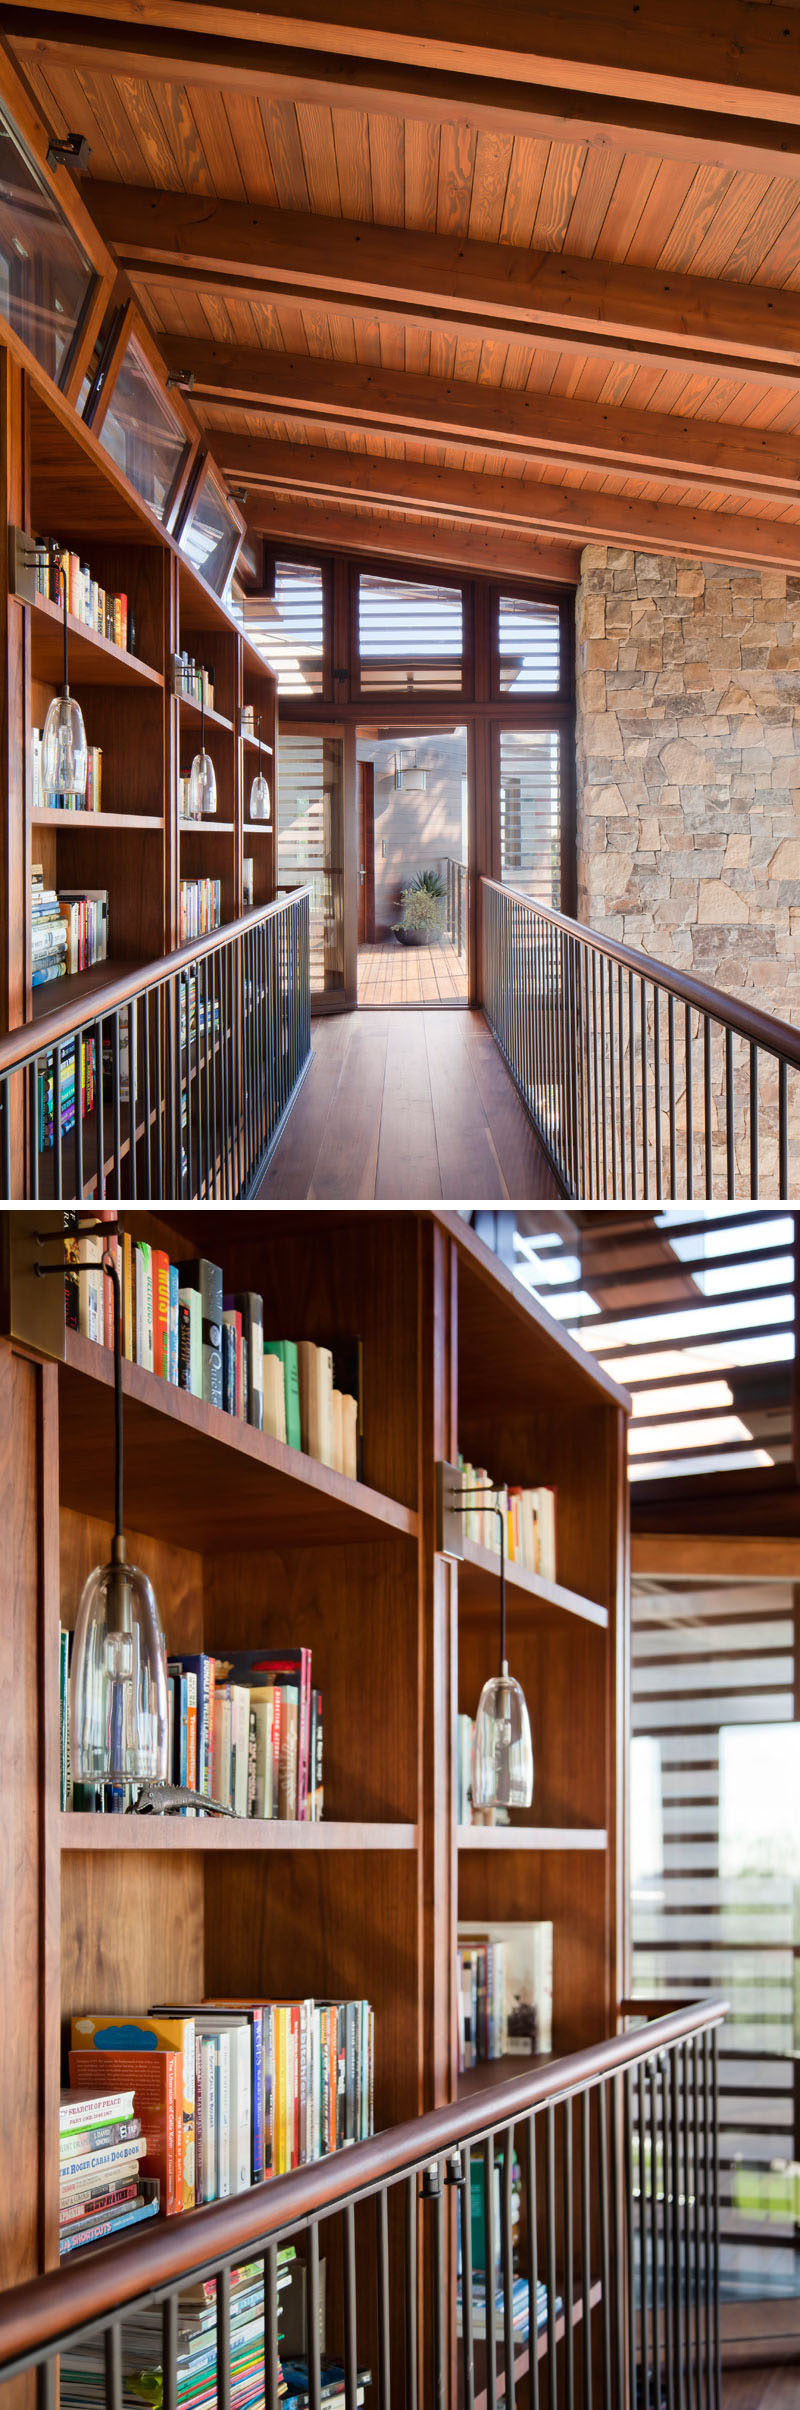 At the top of the stairs in this house is a walkway that connects to the sleeping areas of the home. A large wood bookshelf lines one side of the walkway, while the other looks over the living room and dining area below. #Bookshelf #InteriorWalkway #Shelving